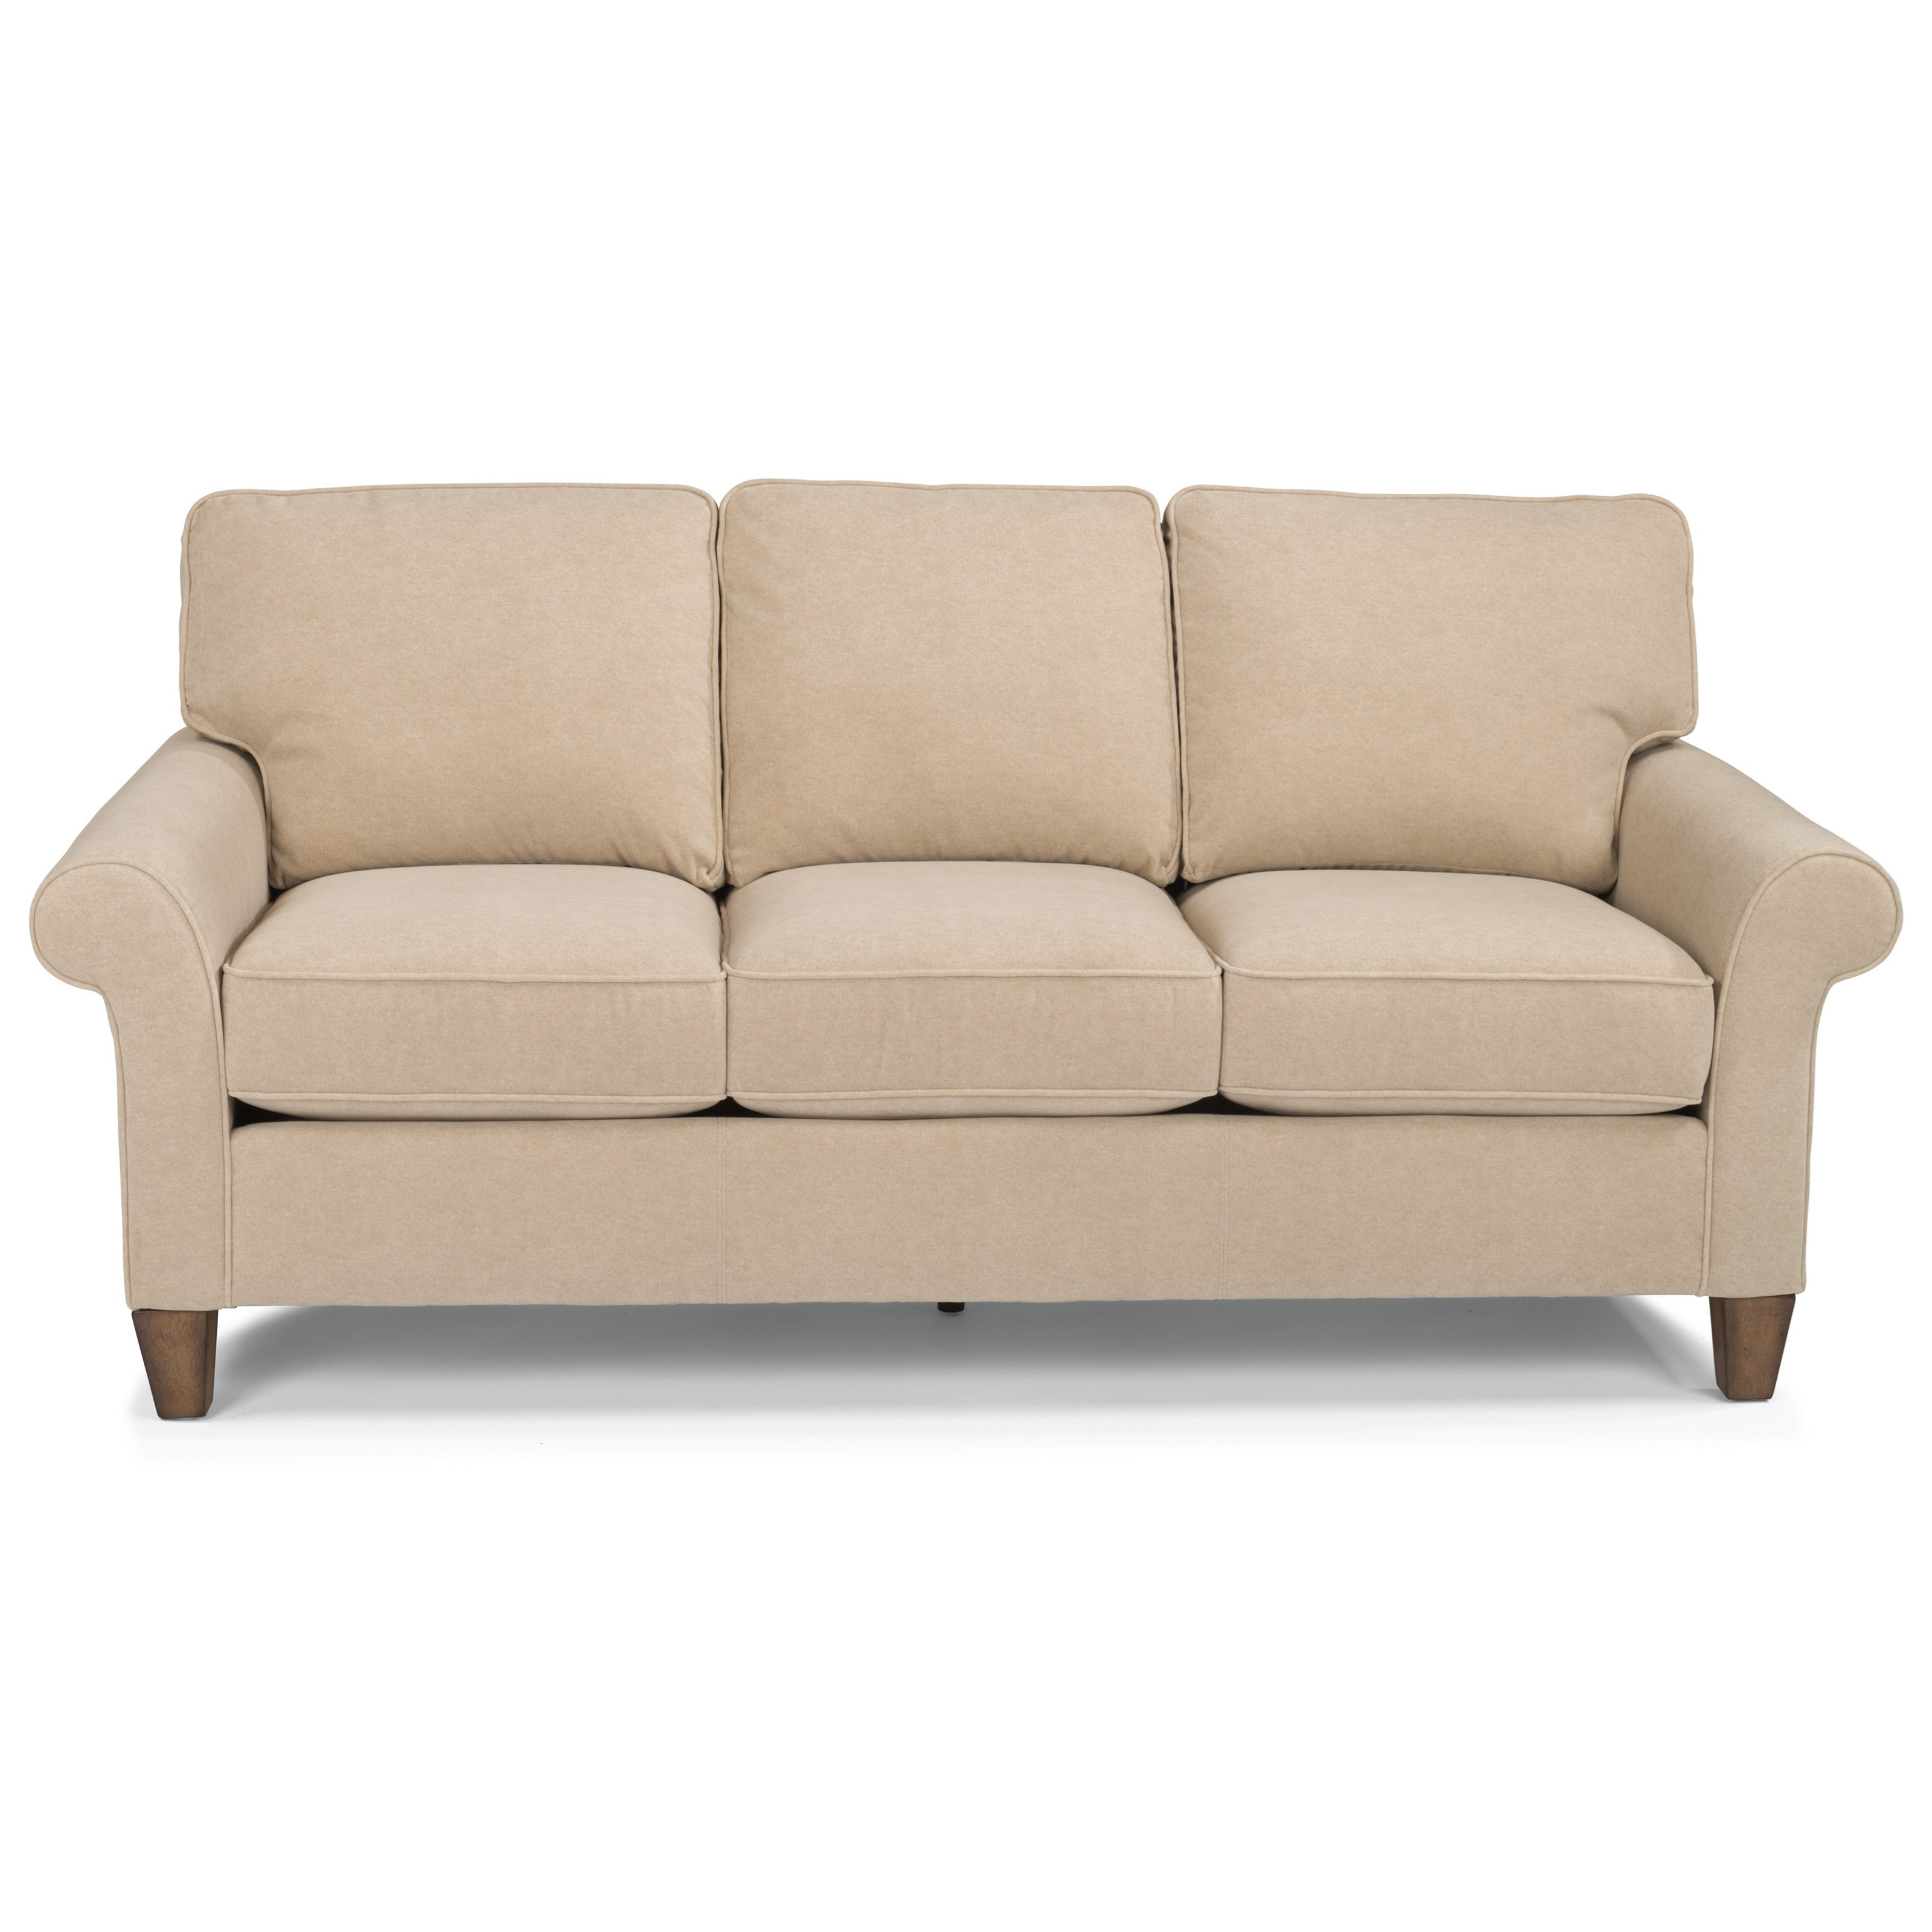 Westside Sofa by Flexsteel at Fisher Home Furnishings